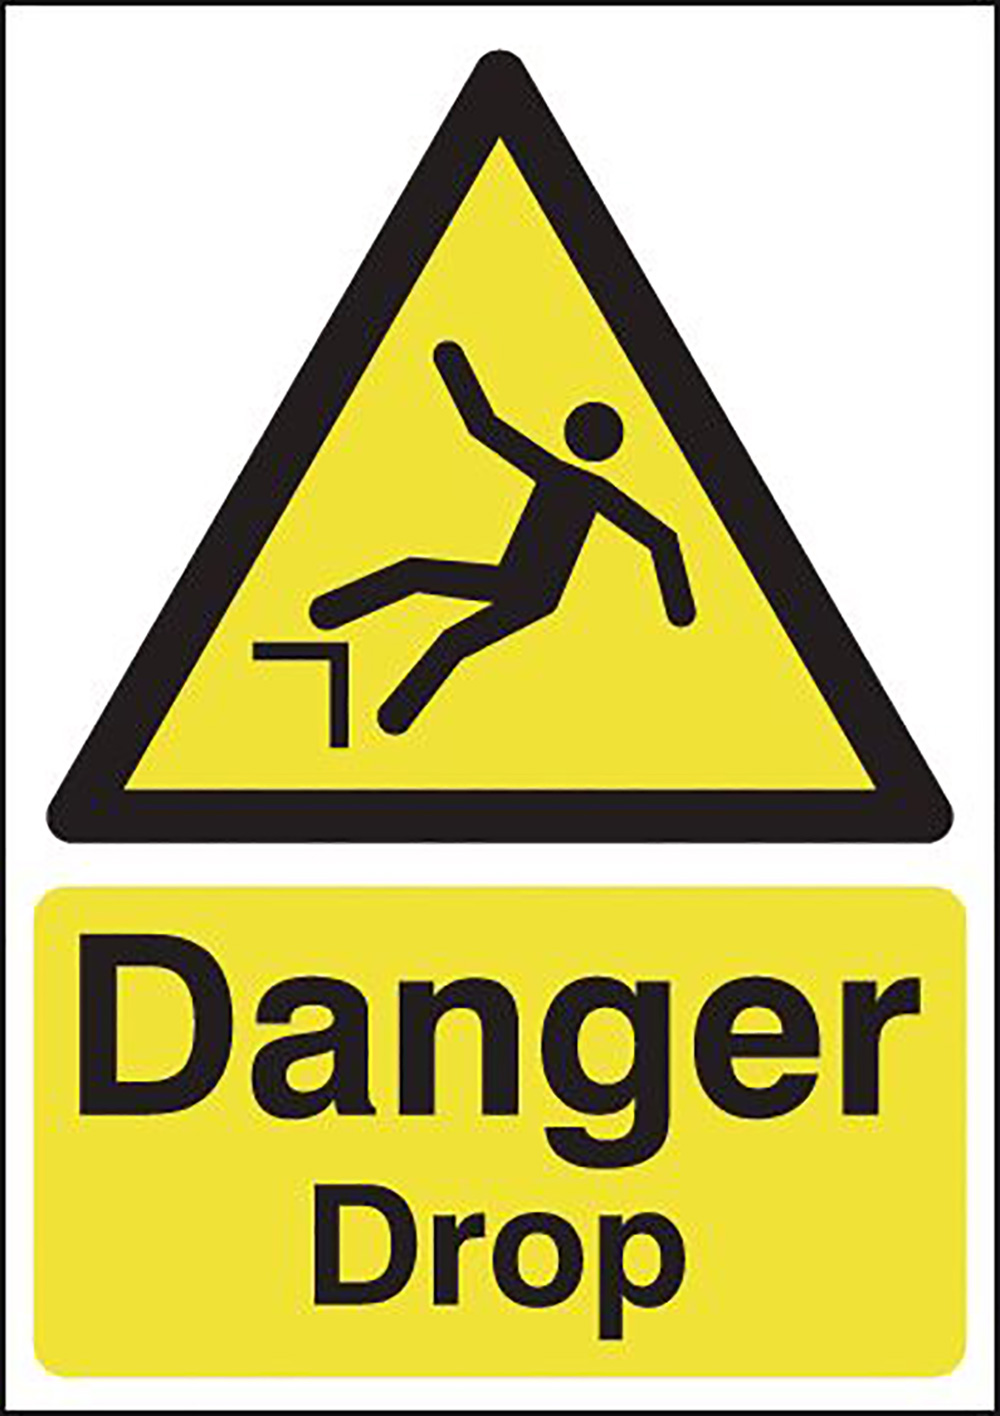 Danger Drop 420x297mm 1.2mm Rigid Plastic Safety Sign